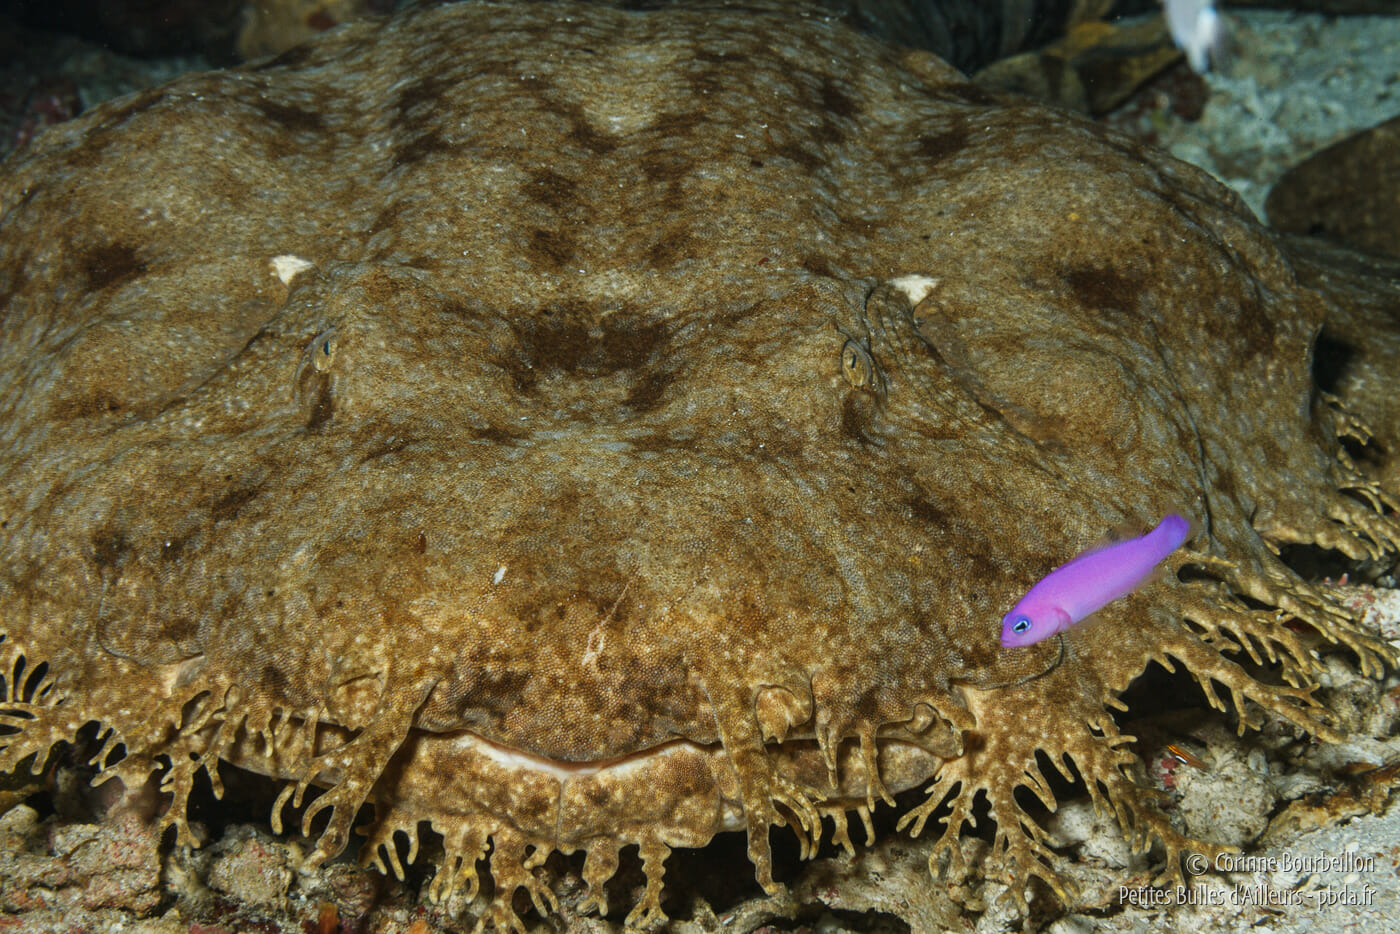 Wobbegong or bearded carpet shark. (Raja Ampat, Papua, Indonesia, March 2012)